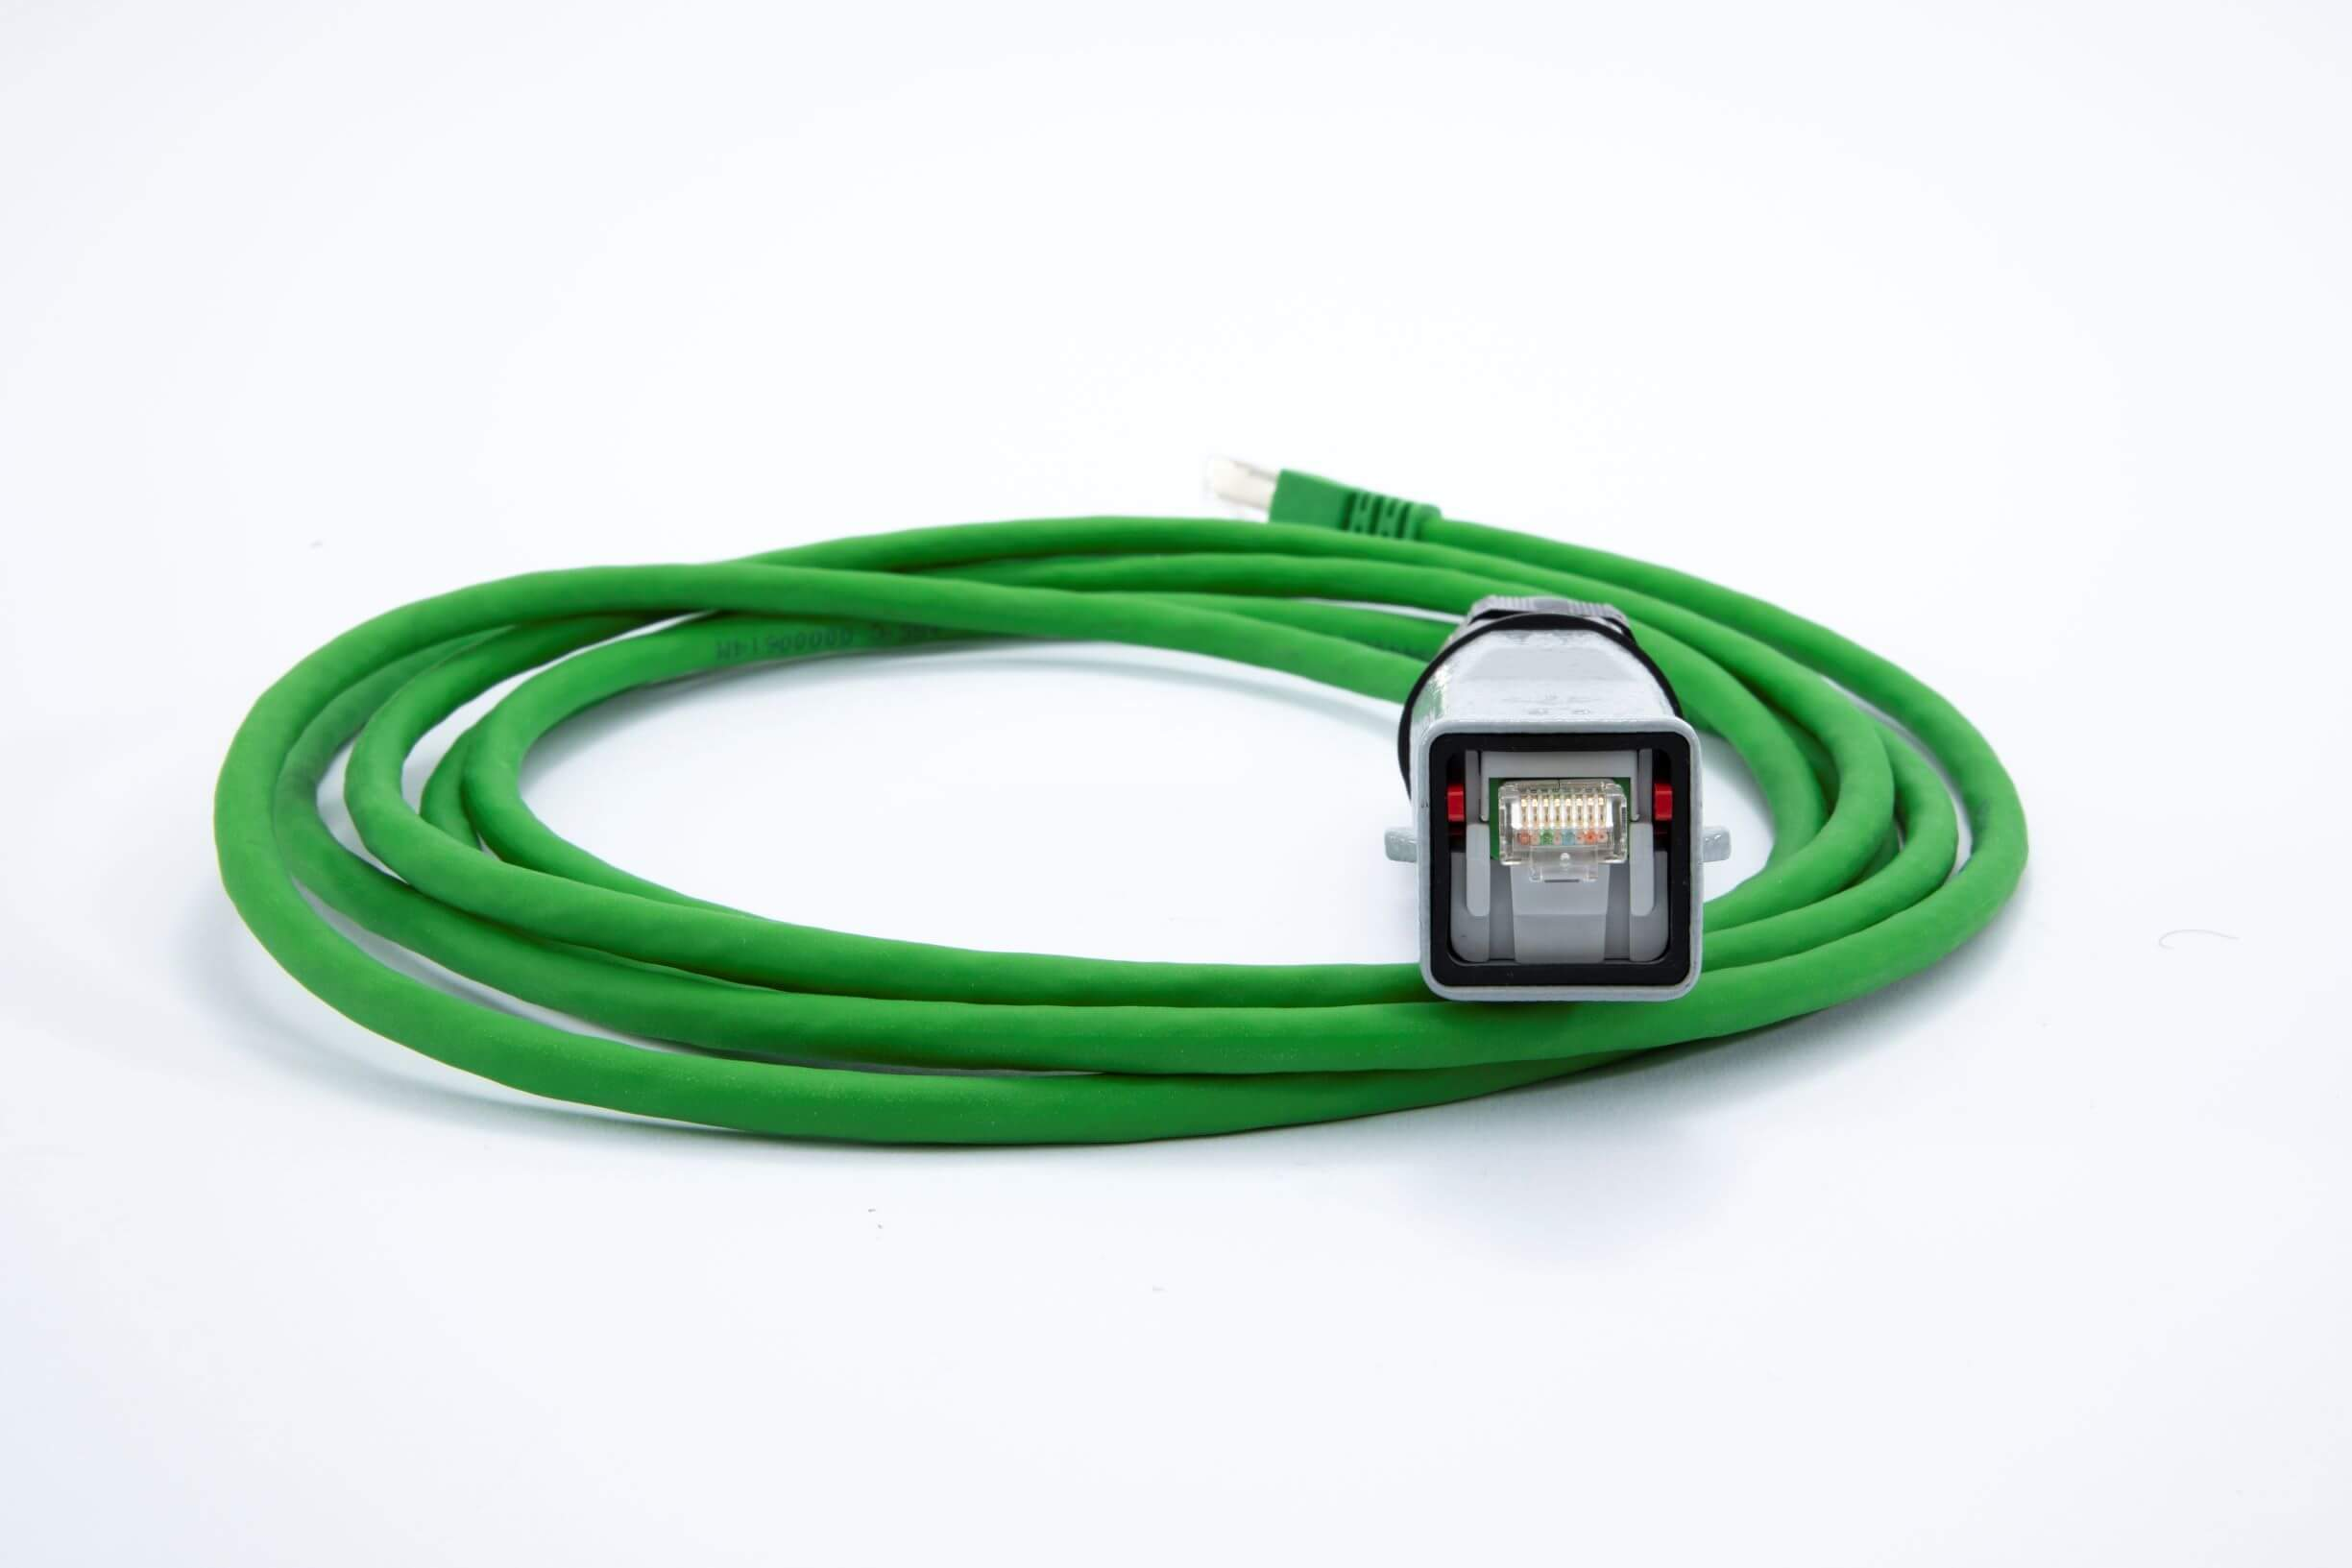 RJ45 universal patch cord adapter